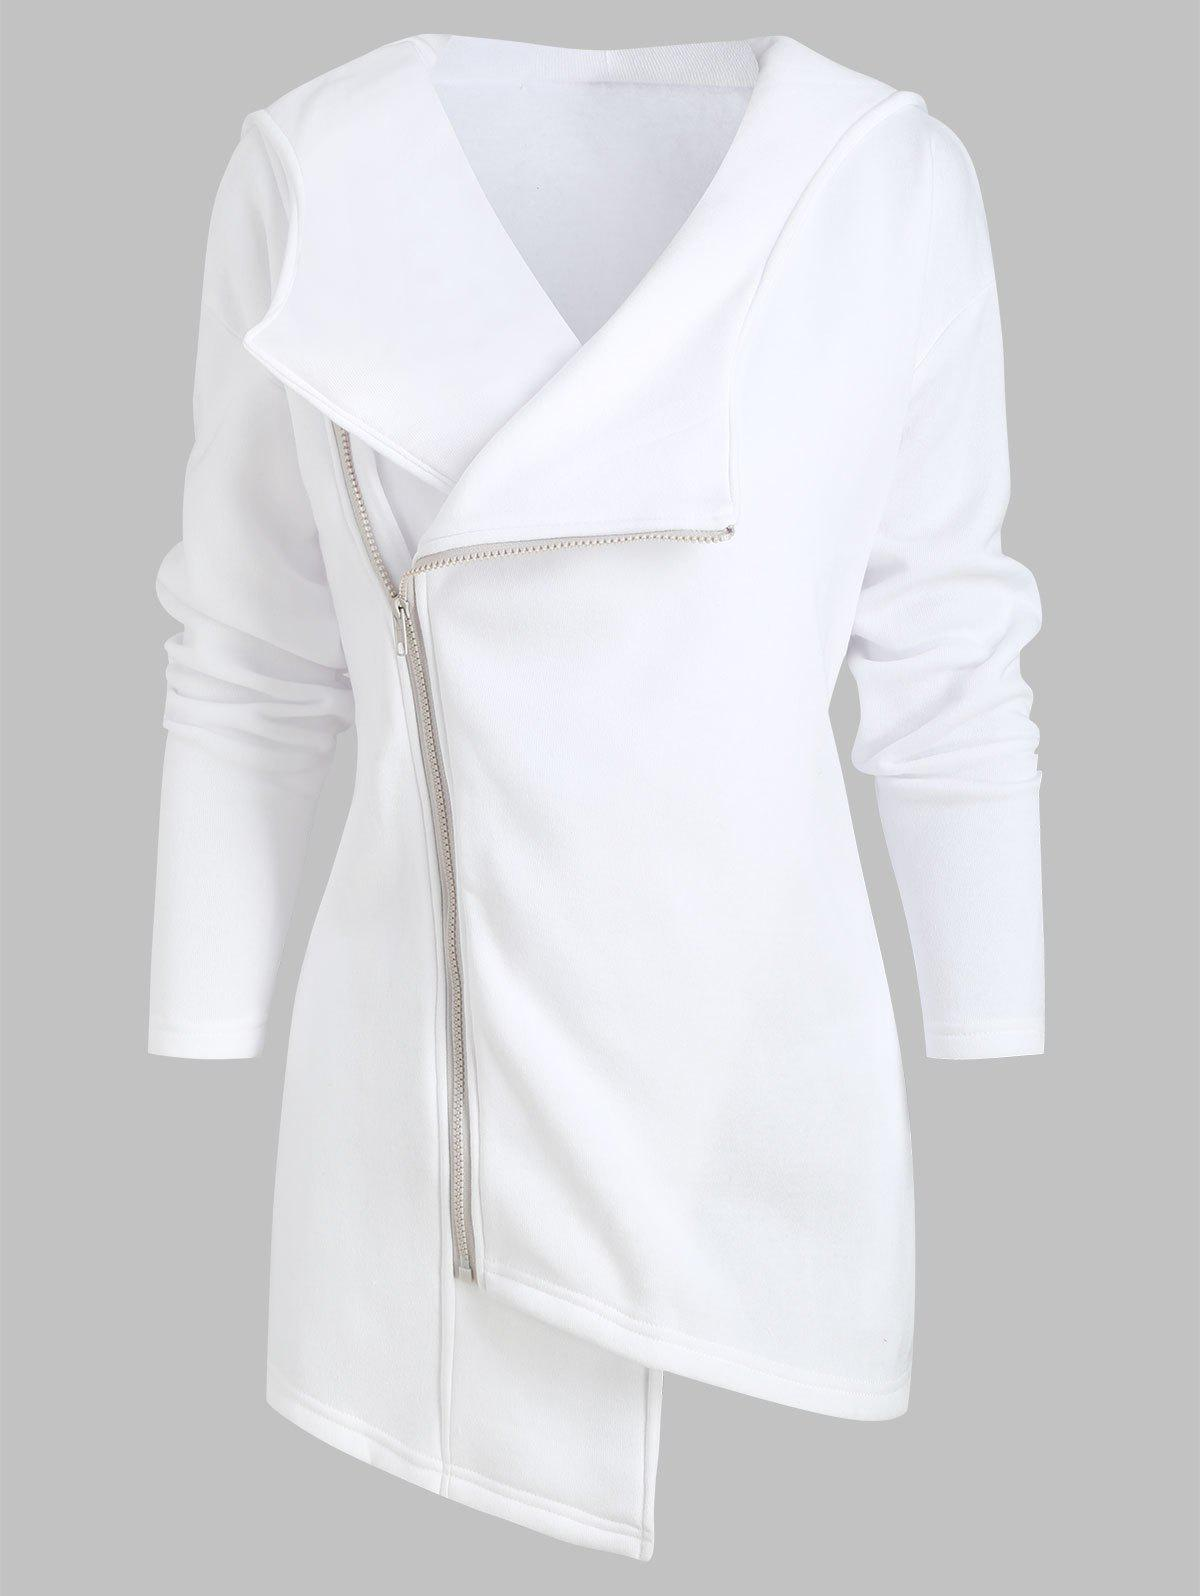 Inclined Zipper Asymmetric Hooded Jacket with Pockets - WHITE S